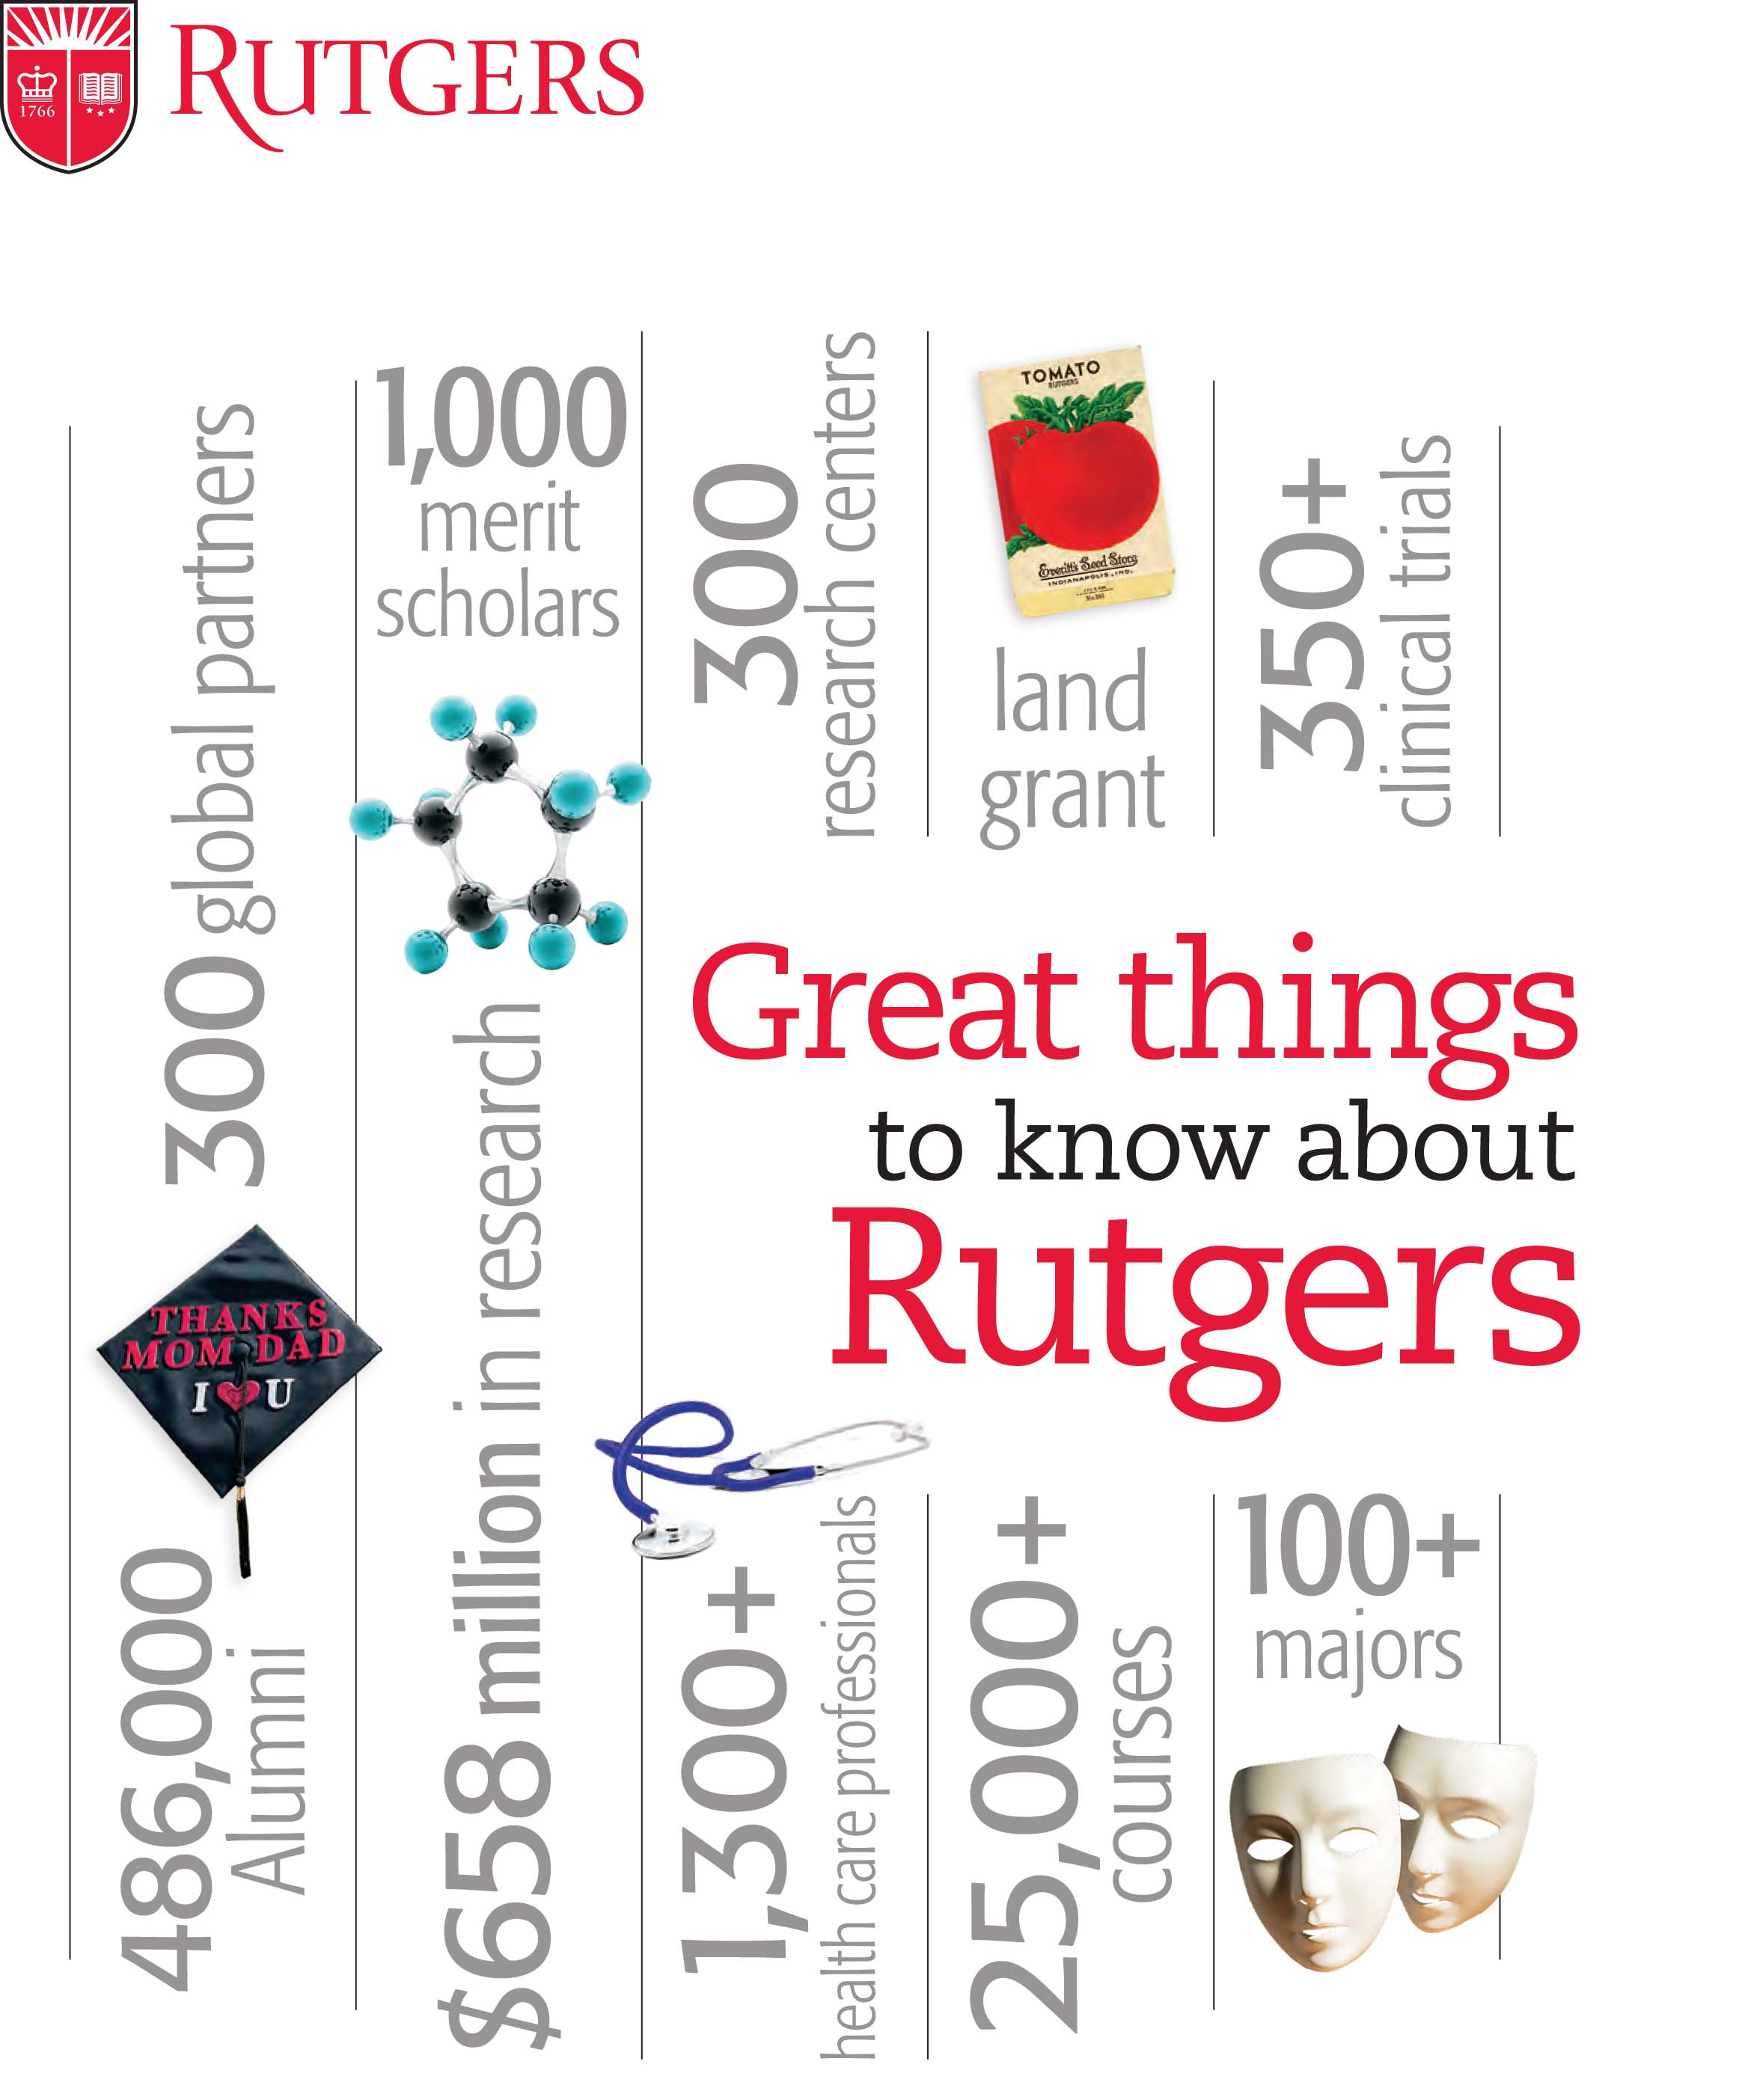 Rutgers_GreatThings 17-1.jpg